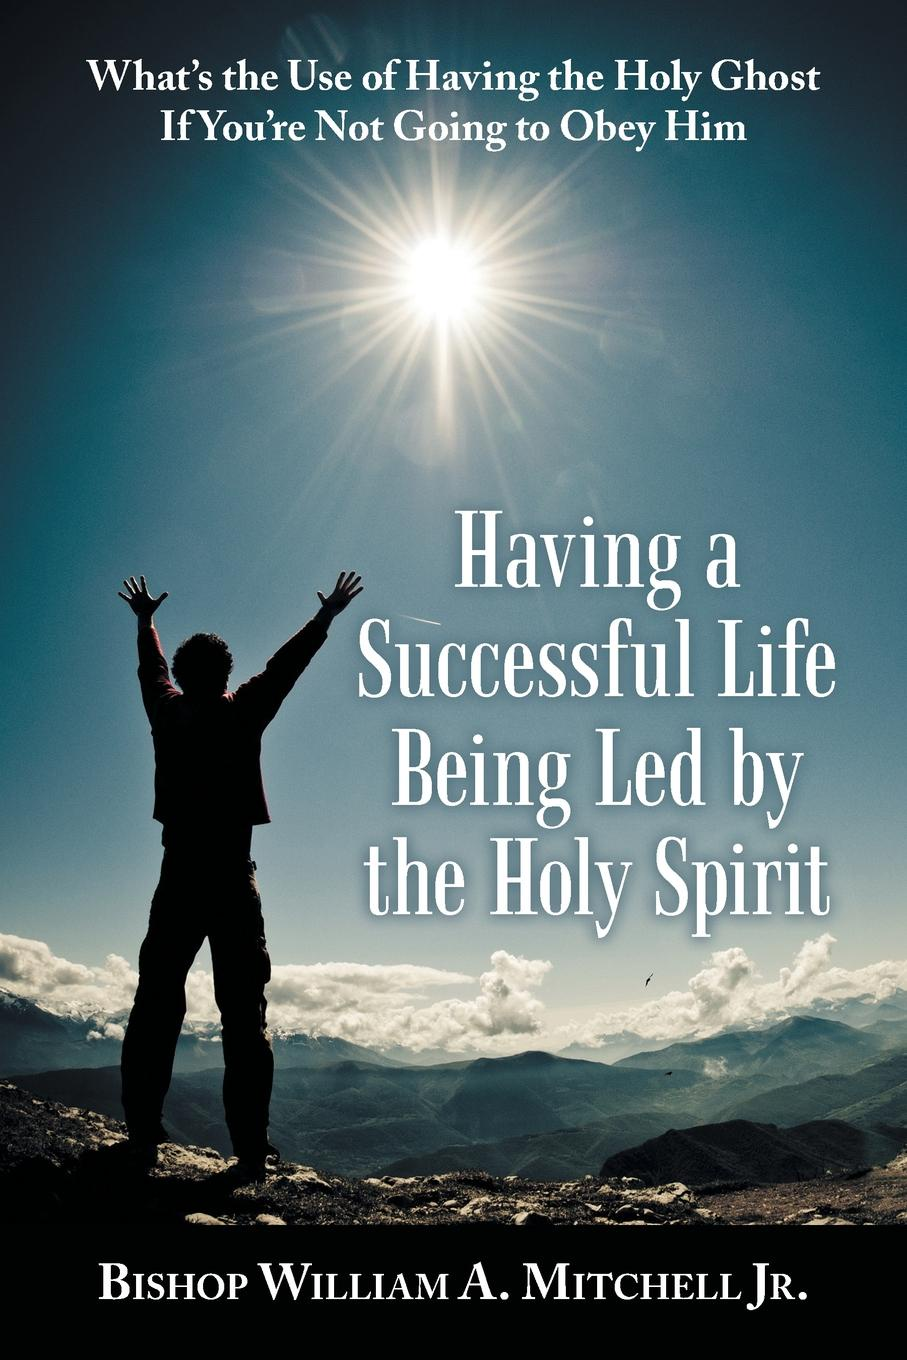 Bishop William A. Mitchell Jr. Having a Successful Life Being Led by the Holy Spirit. Whats Use of Ghost If YouRe Not Going to Obey Him